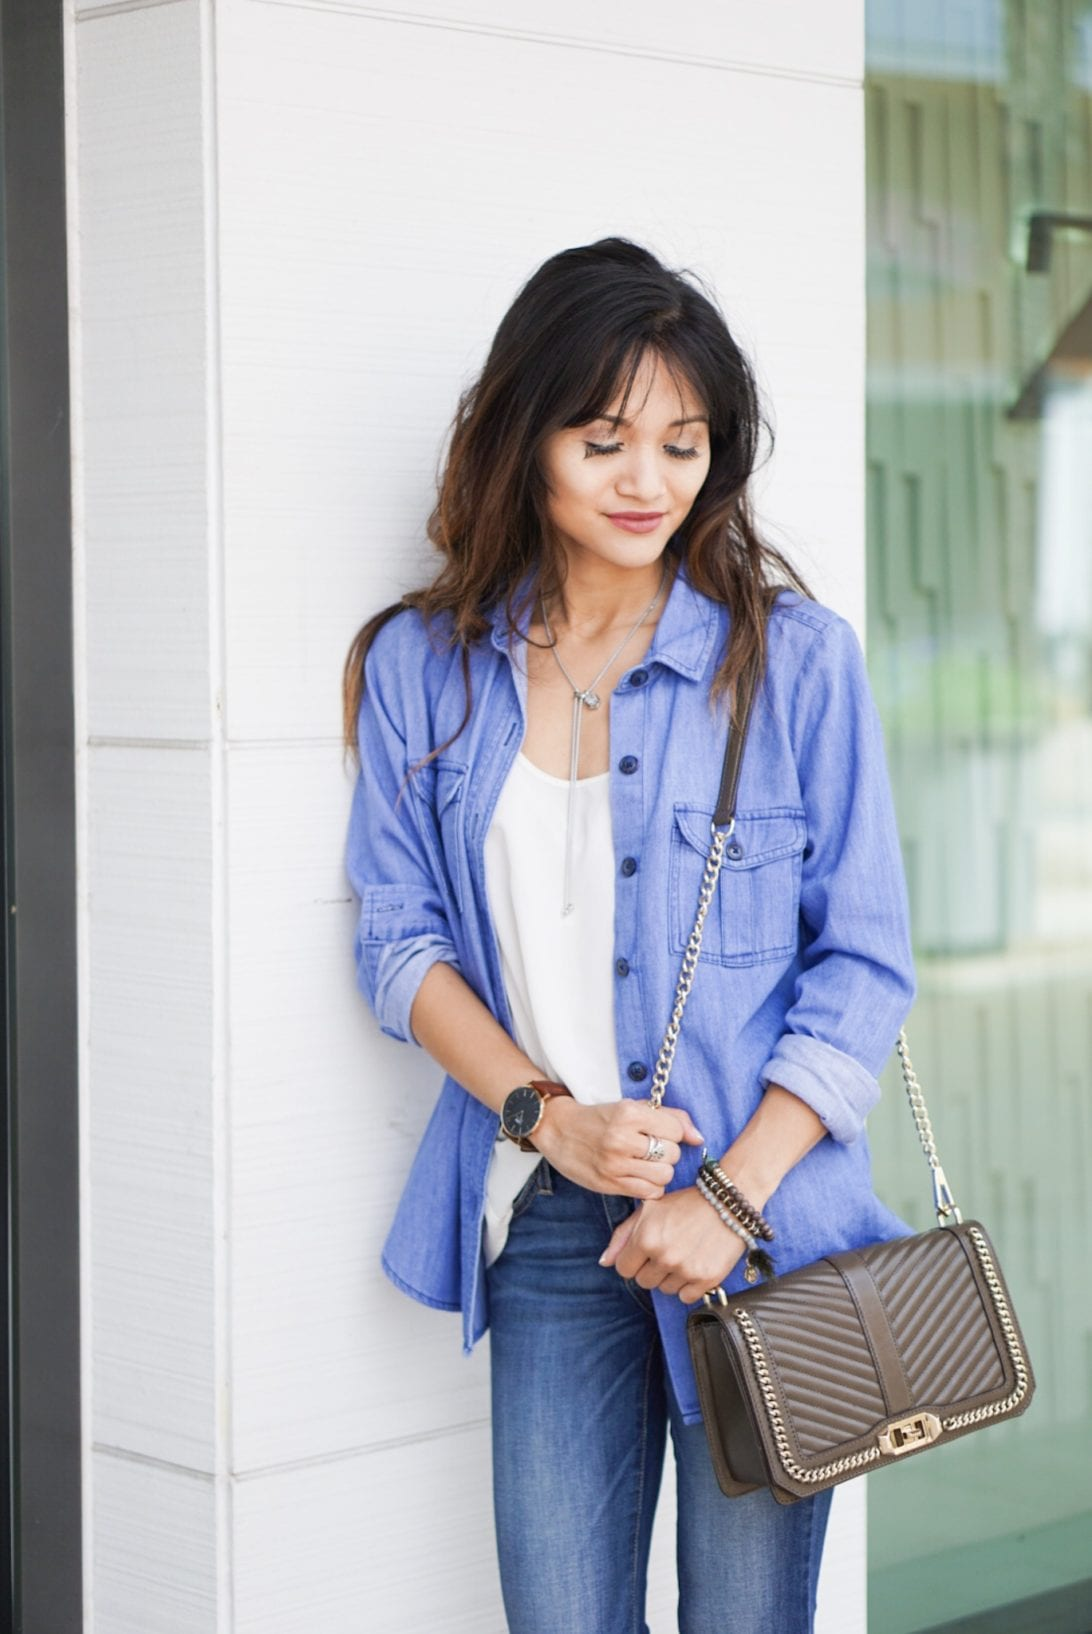 old navy denim shirt, chambray shirt, cross body love bag, rebecca minkoff